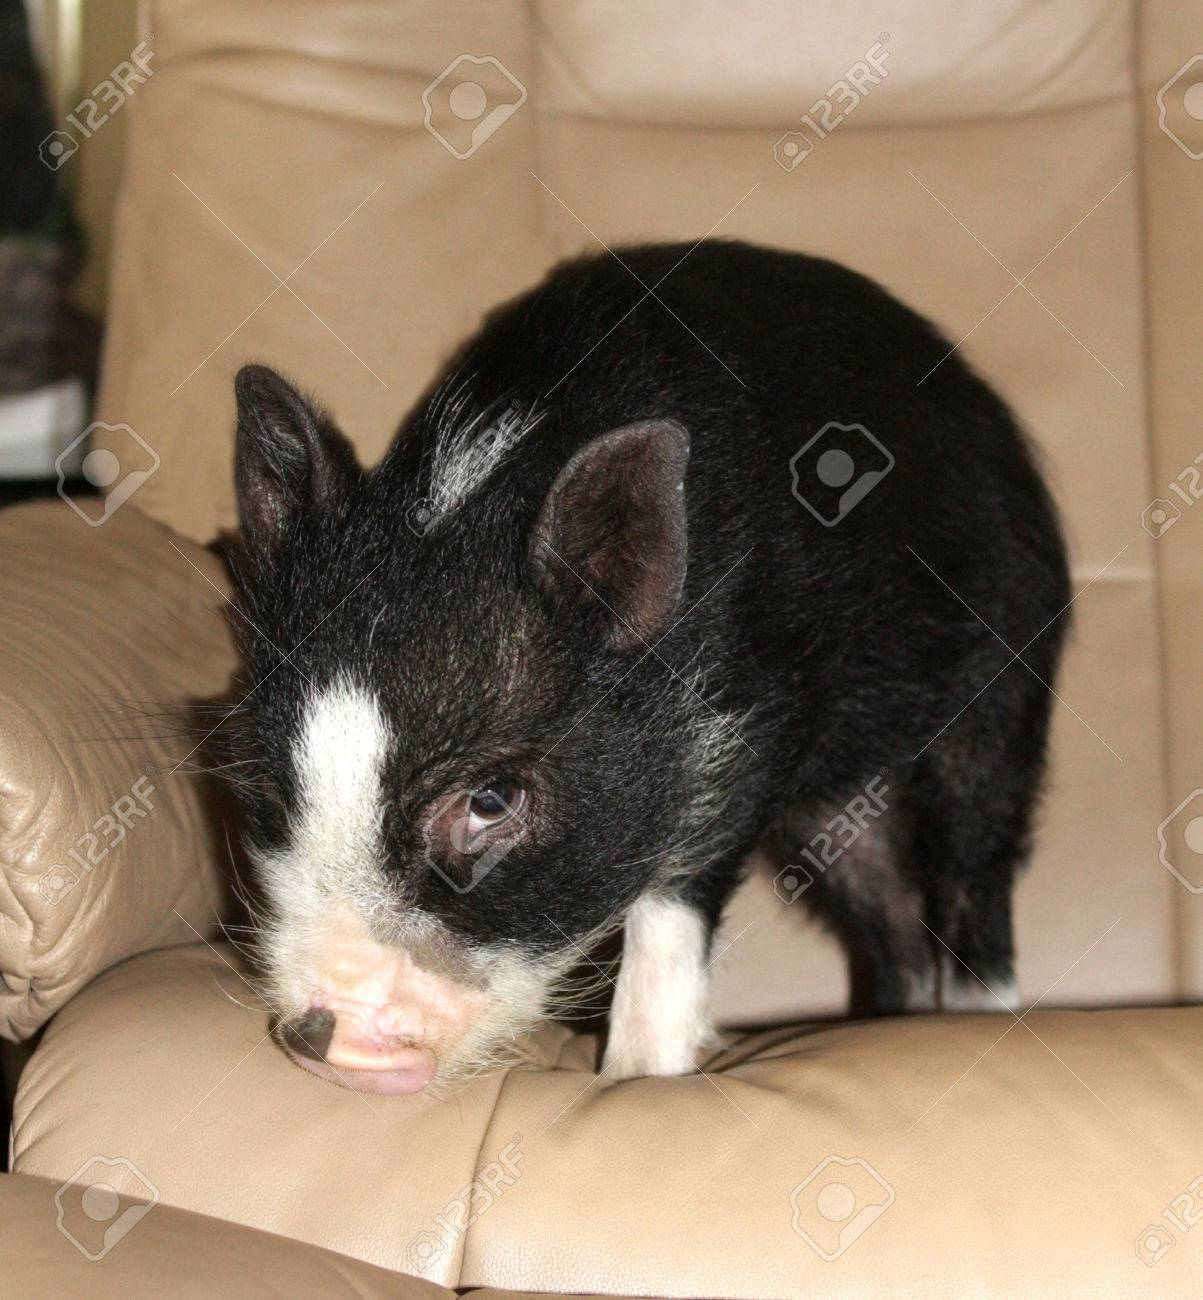 Pig with a guilty conscience Stock Photo - 23308423